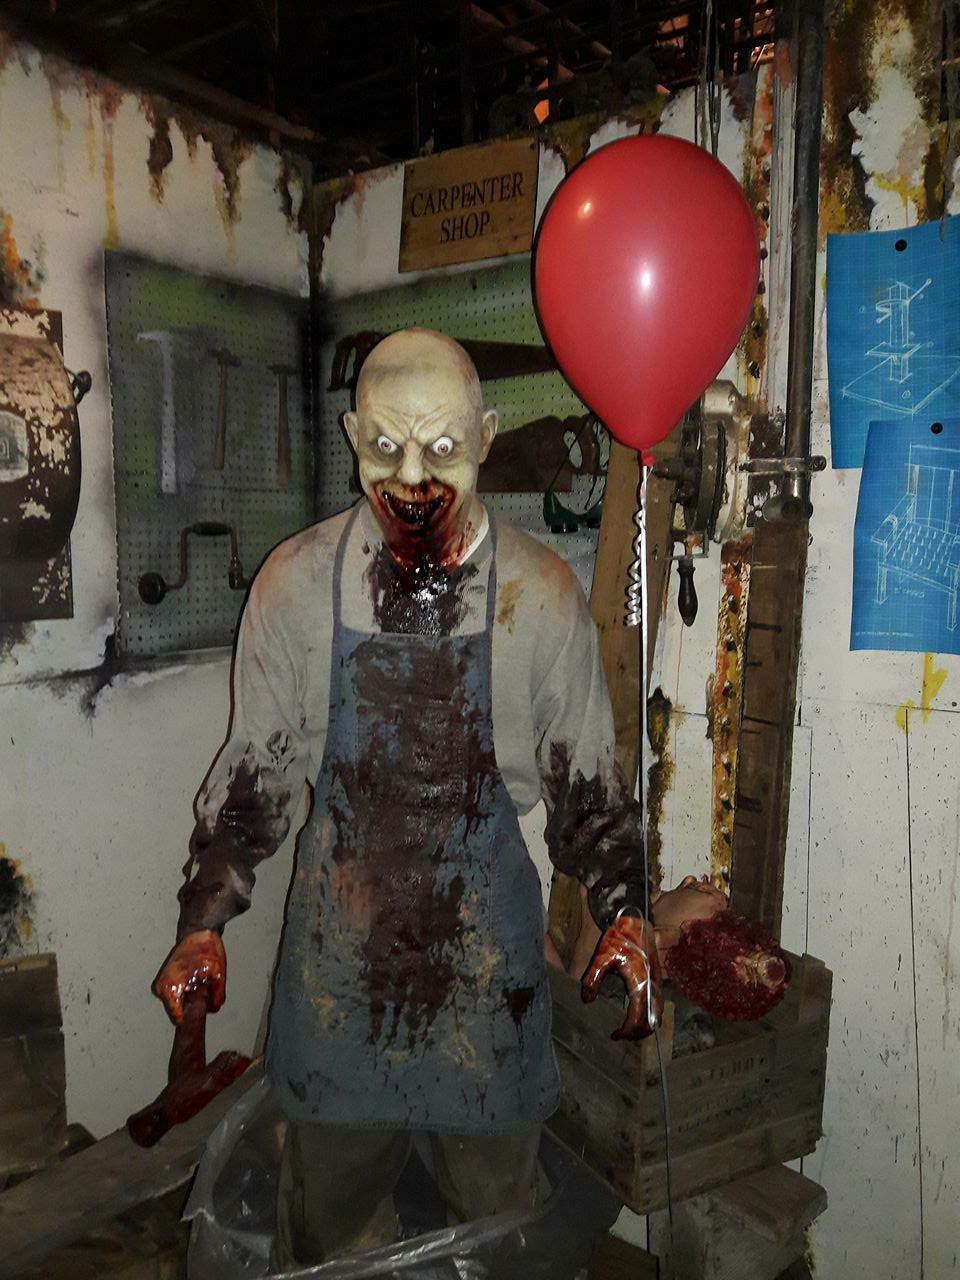 USS Nightmare Haunted Dredge Boat Butcher With Balloon